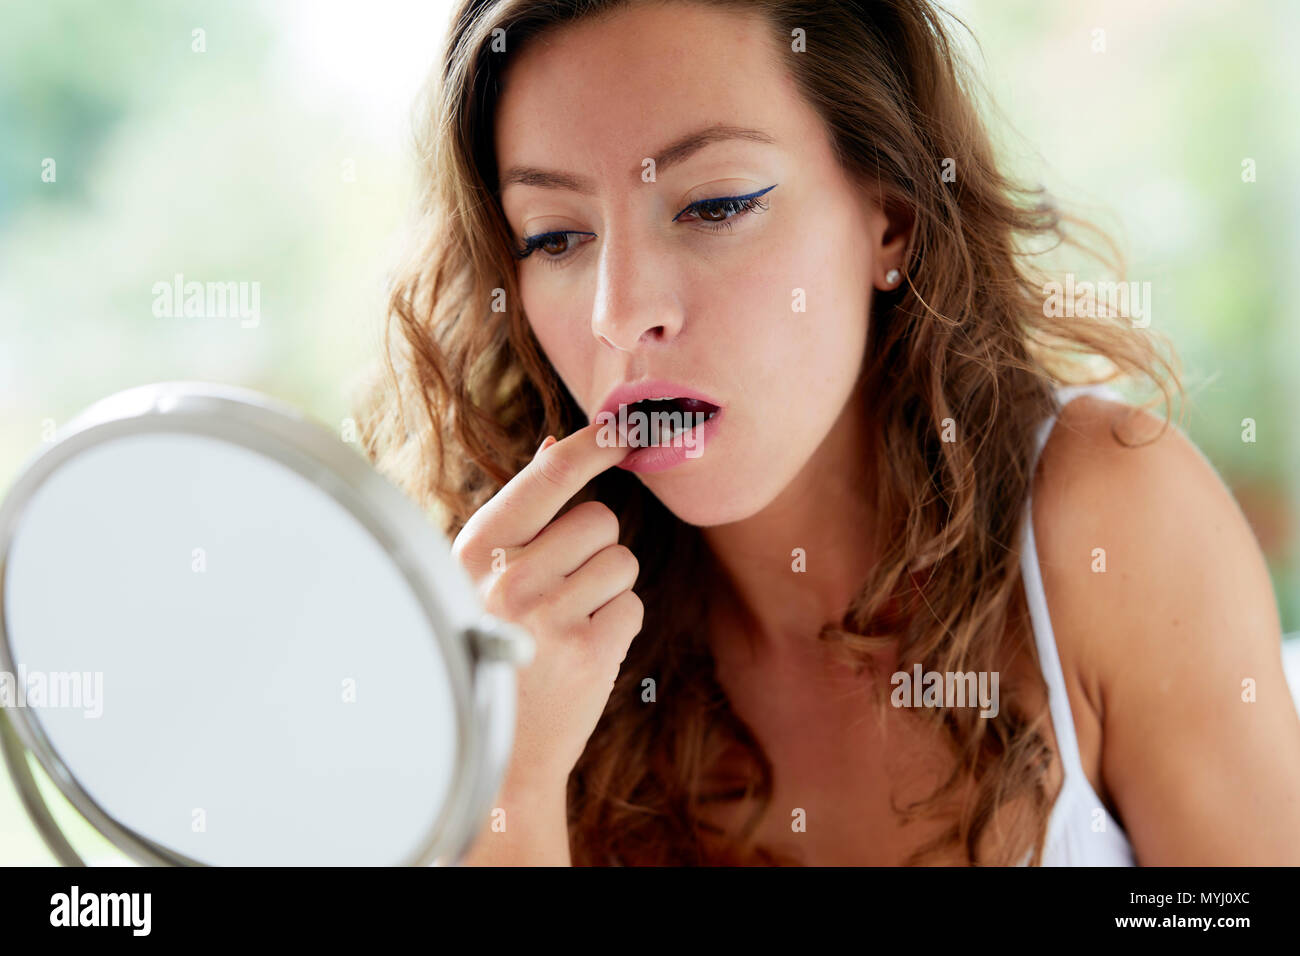 Girl looking in her mouth - Stock Image